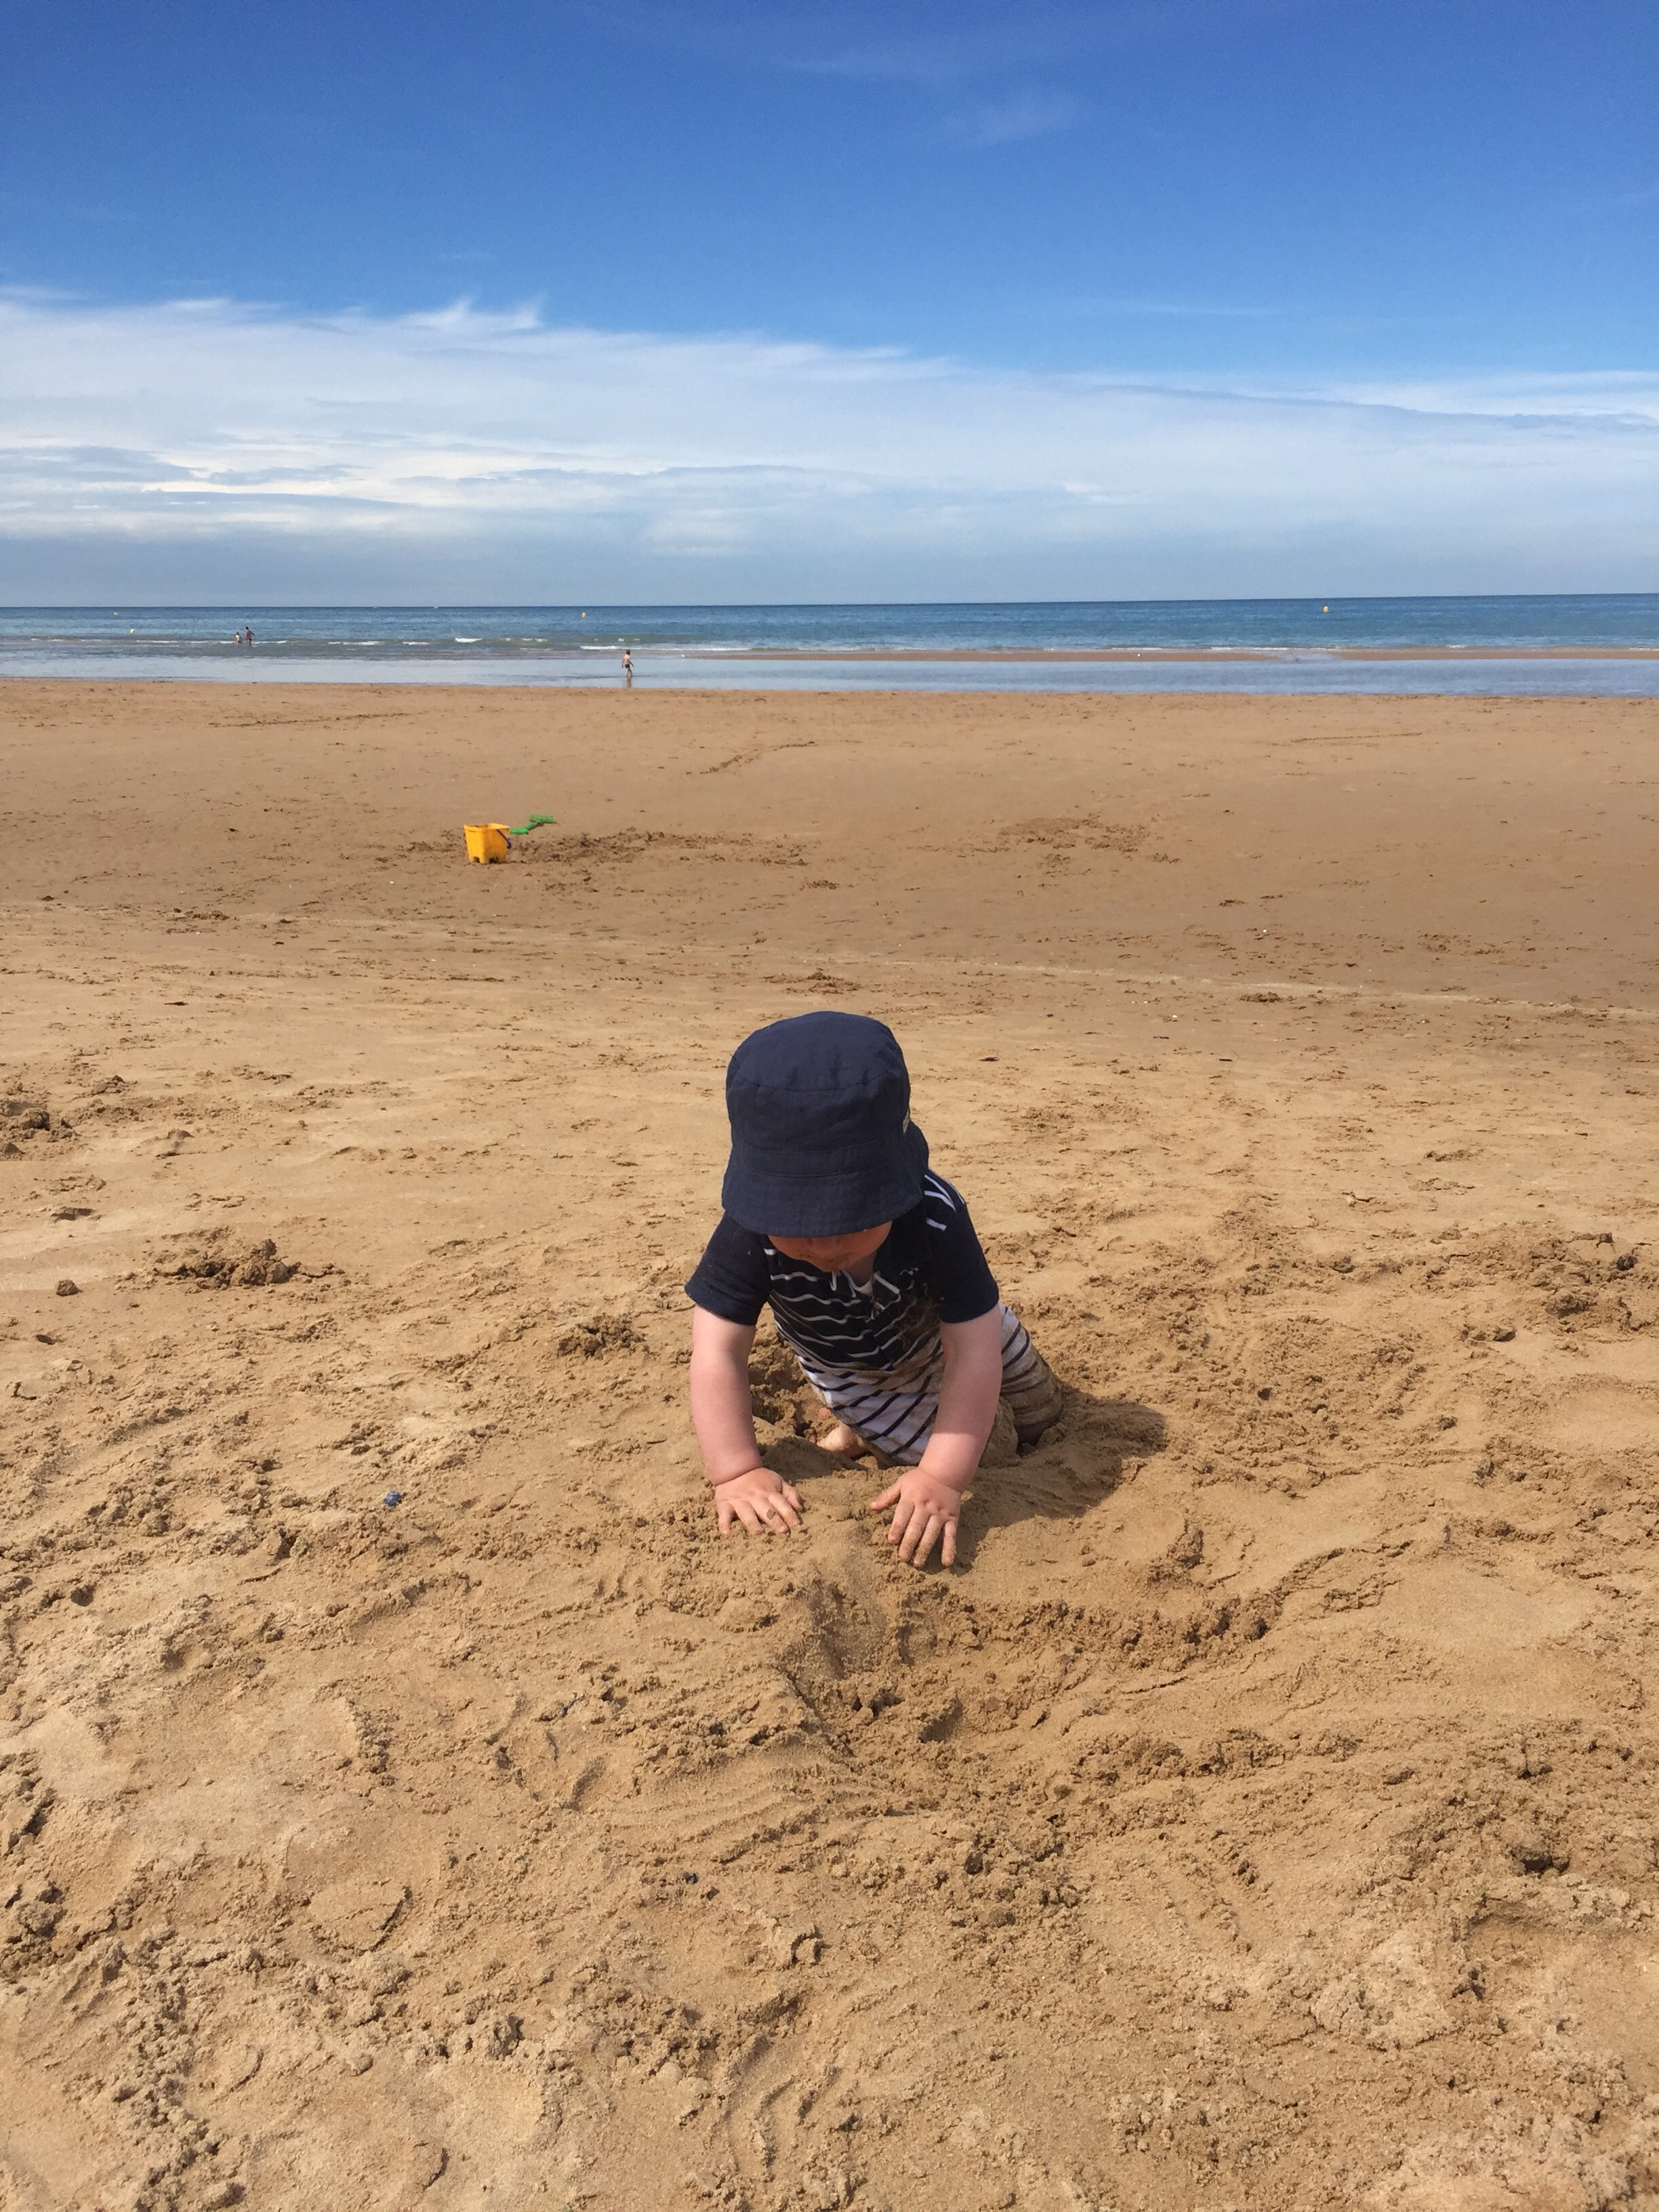 TRAVEL REVIEW: Not everyone's first thought, but Normandy is ideal for families